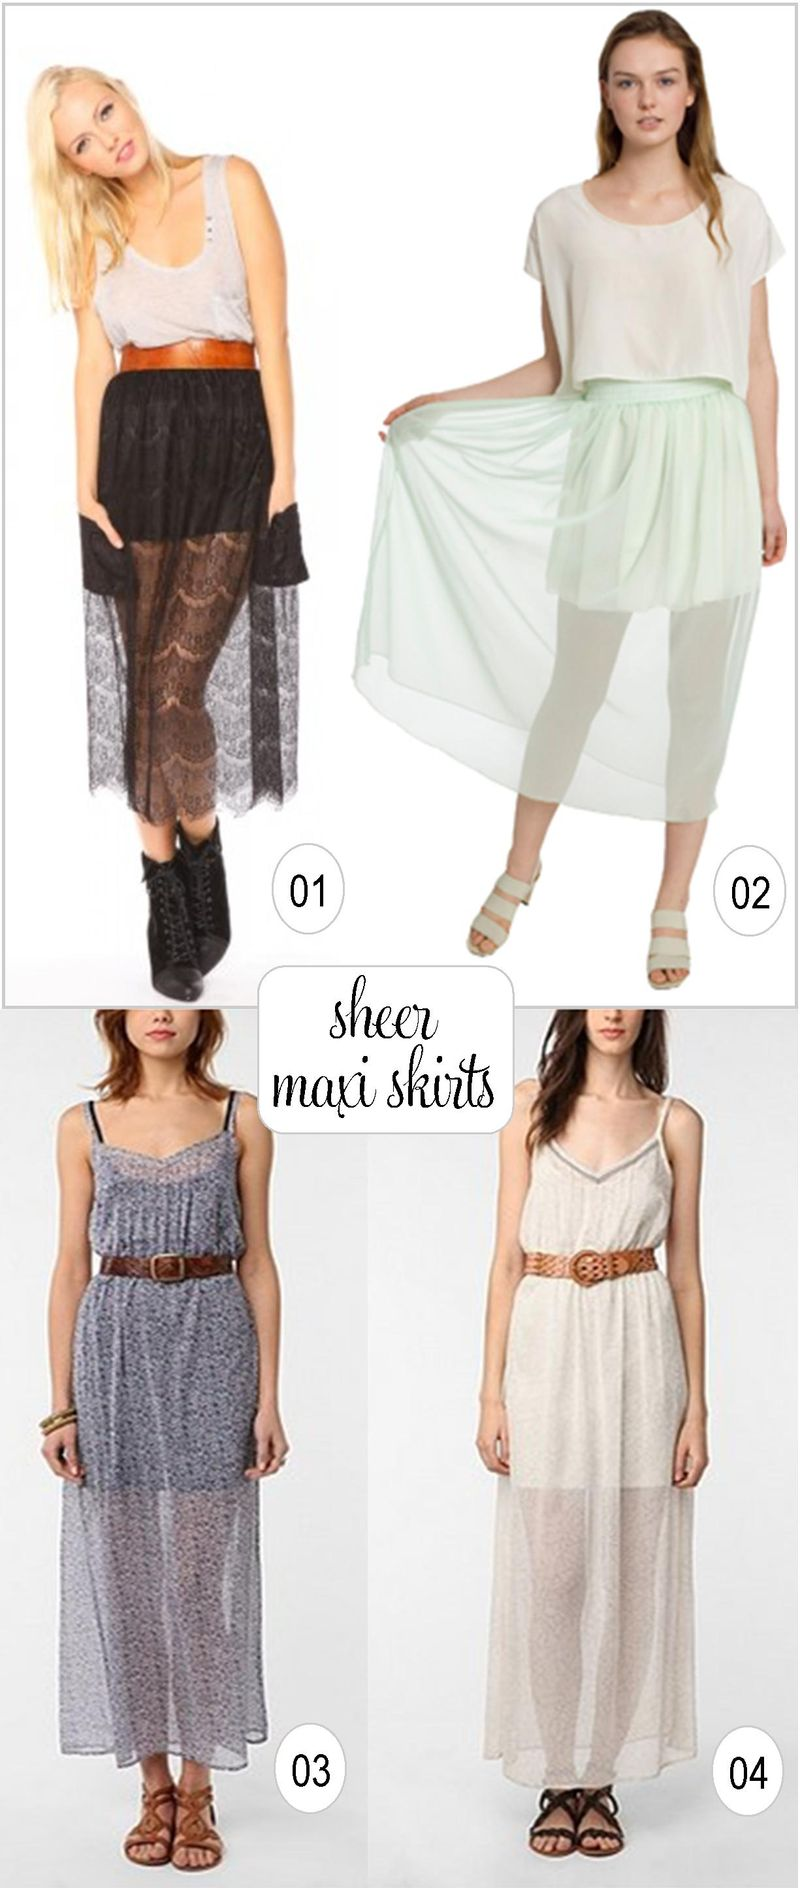 Sheer maxi skirts collage